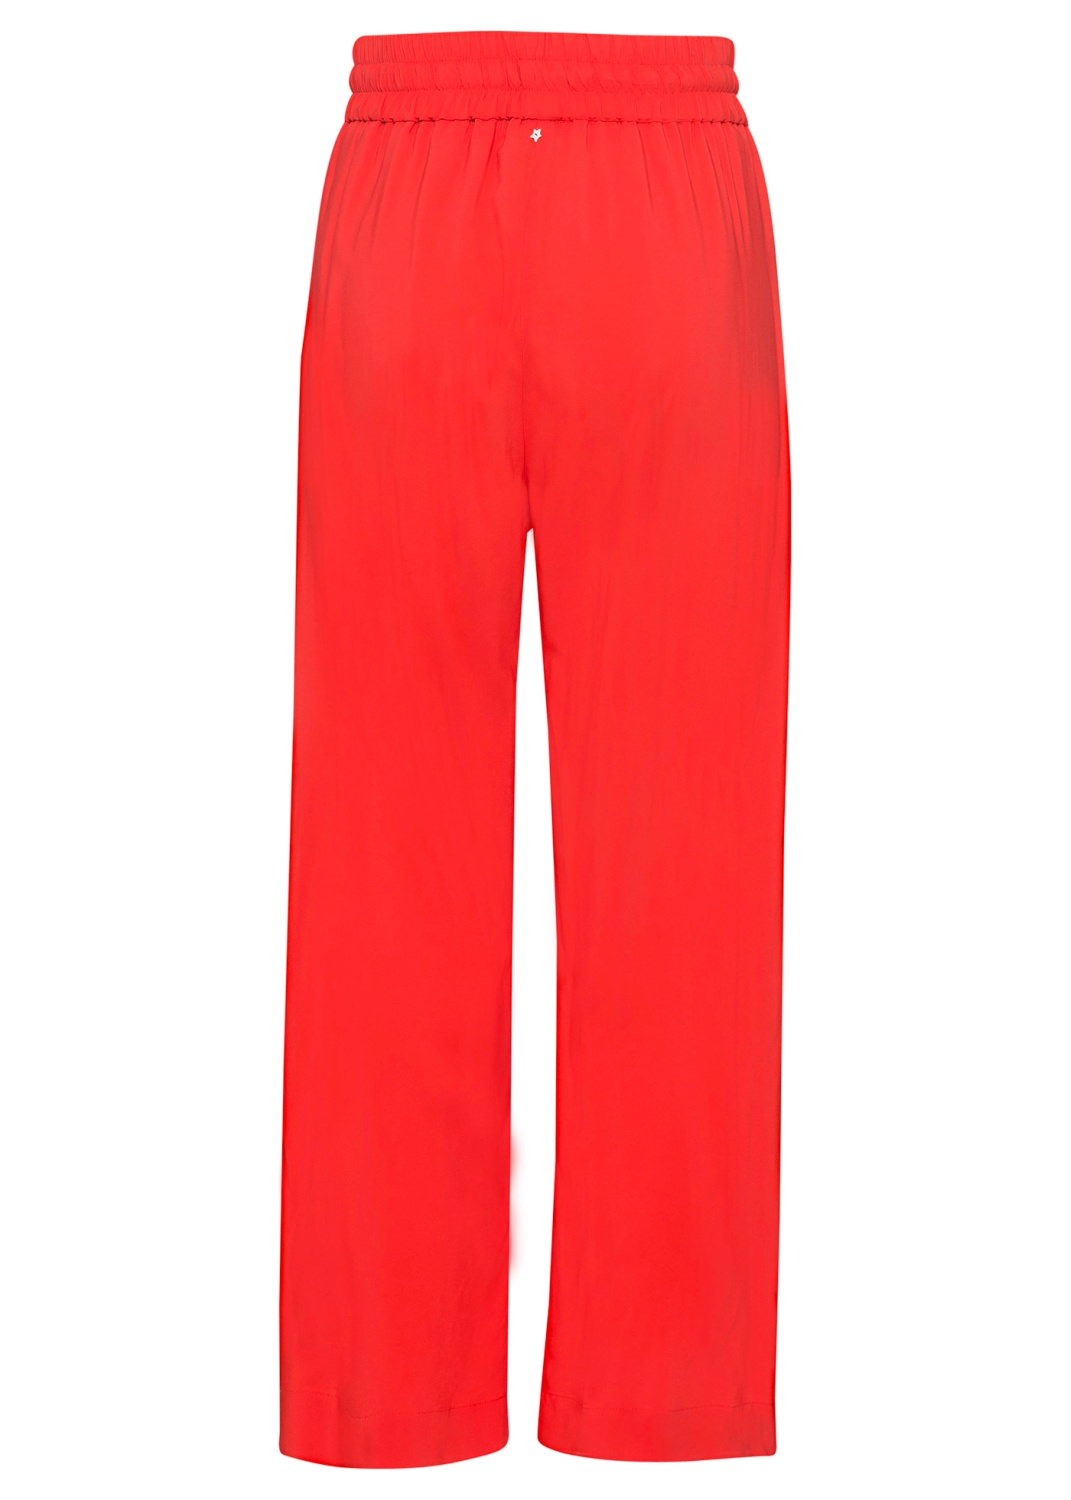 Cropped Pants image number 1